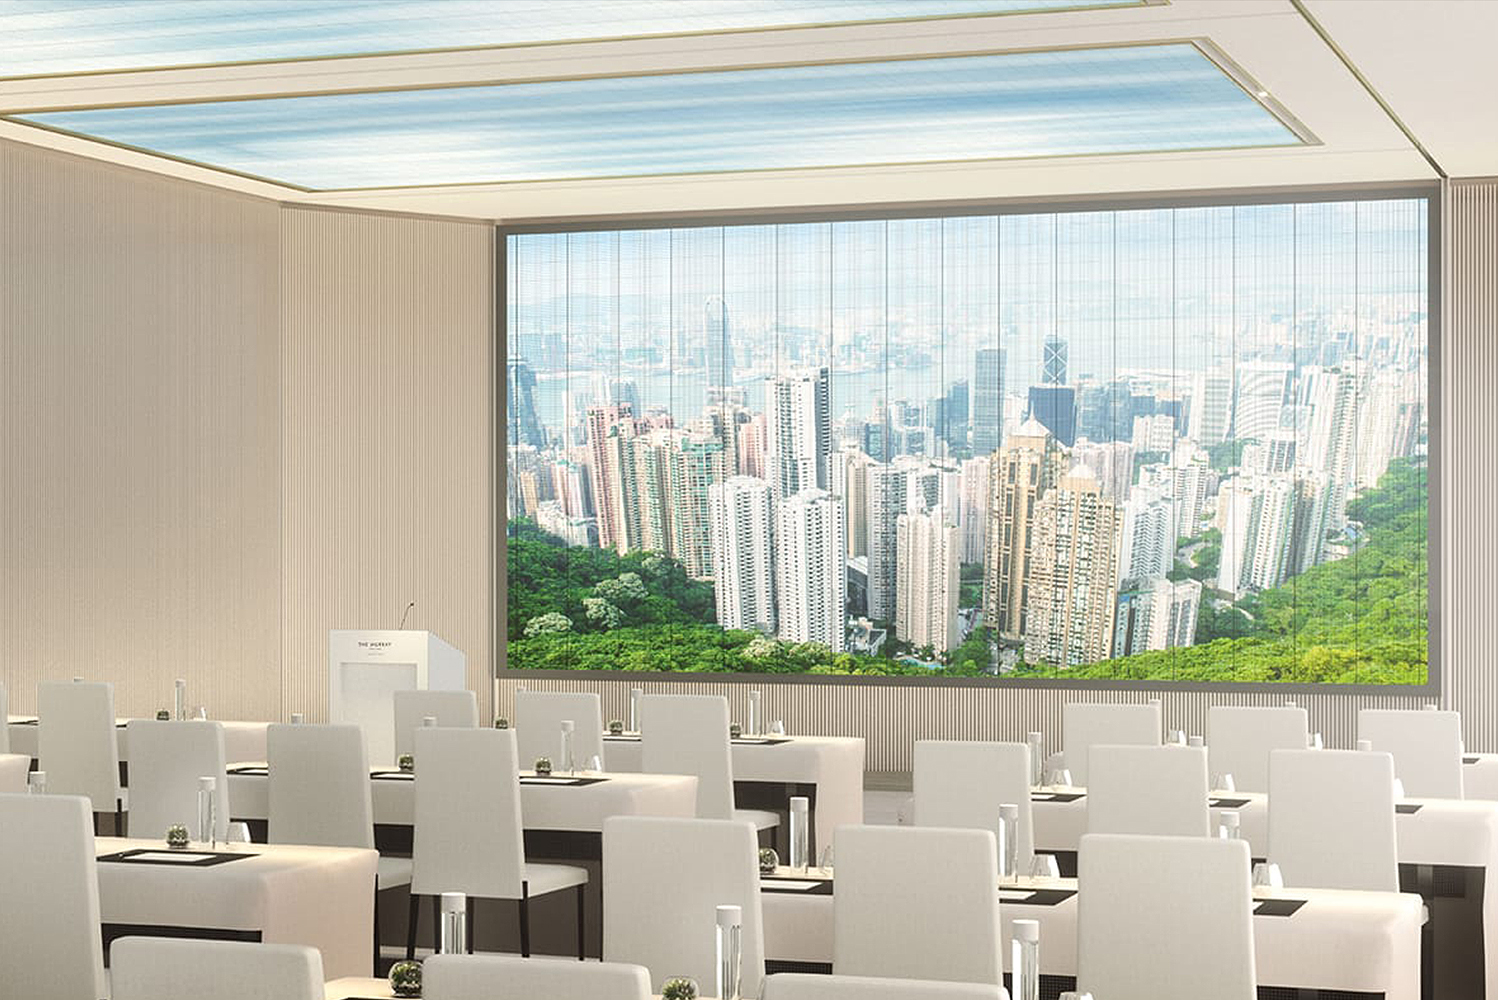 The Niccolo Room on the 25th floor can seat 240 guests or hold up to 350 people for receptions. Additionally, there are six smaller boardrooms all featuring natural light.